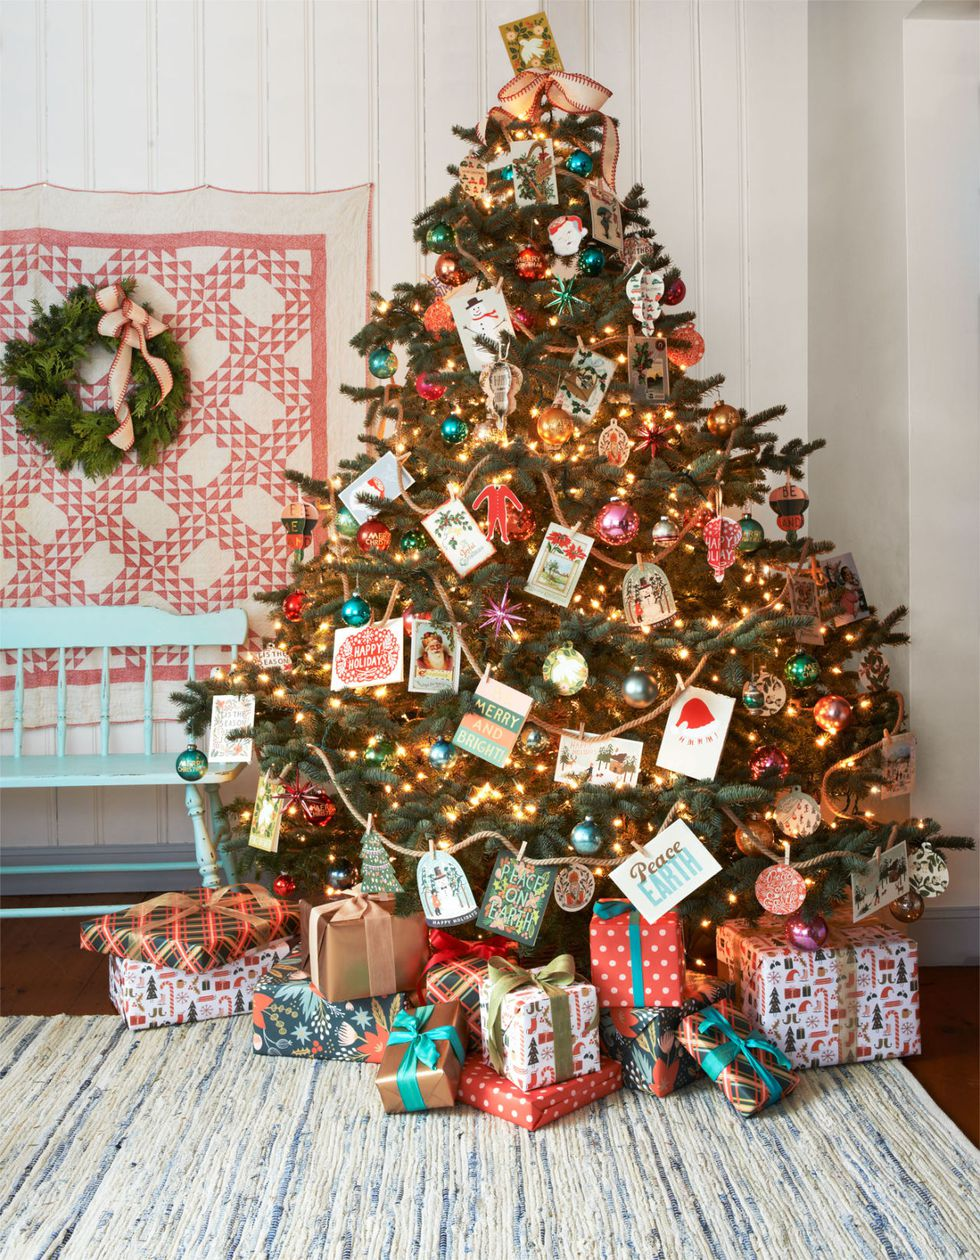 10 Ways to Decorate Your Christmas Tree - Traditional Christmas Tree